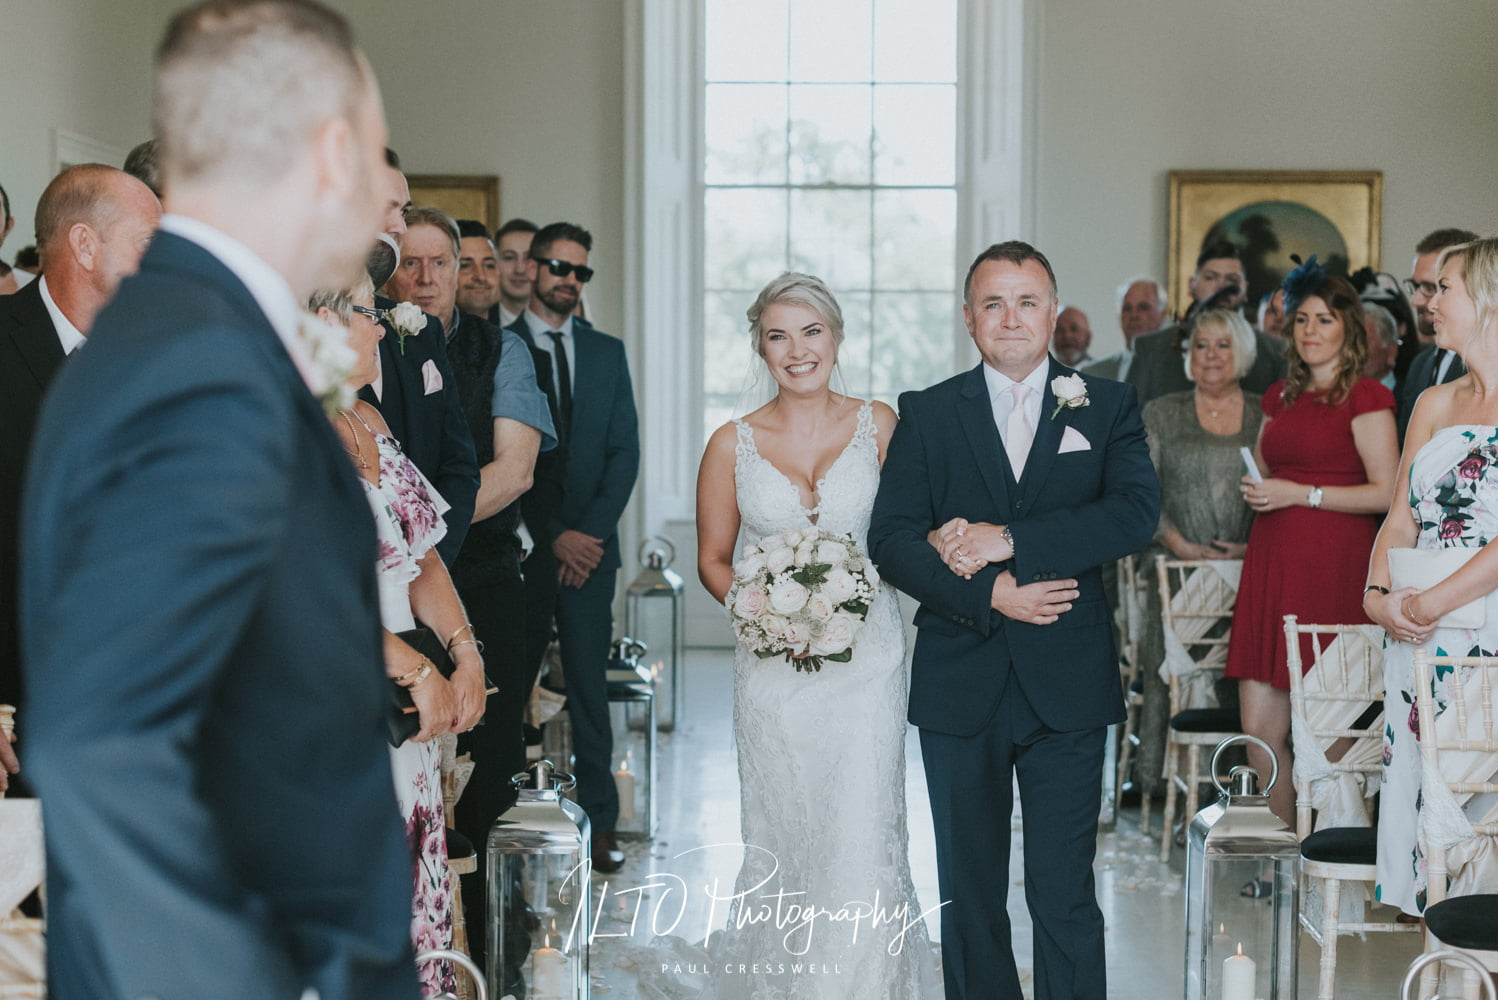 Elegant affordable wedding portfolio wedding photographer leeds